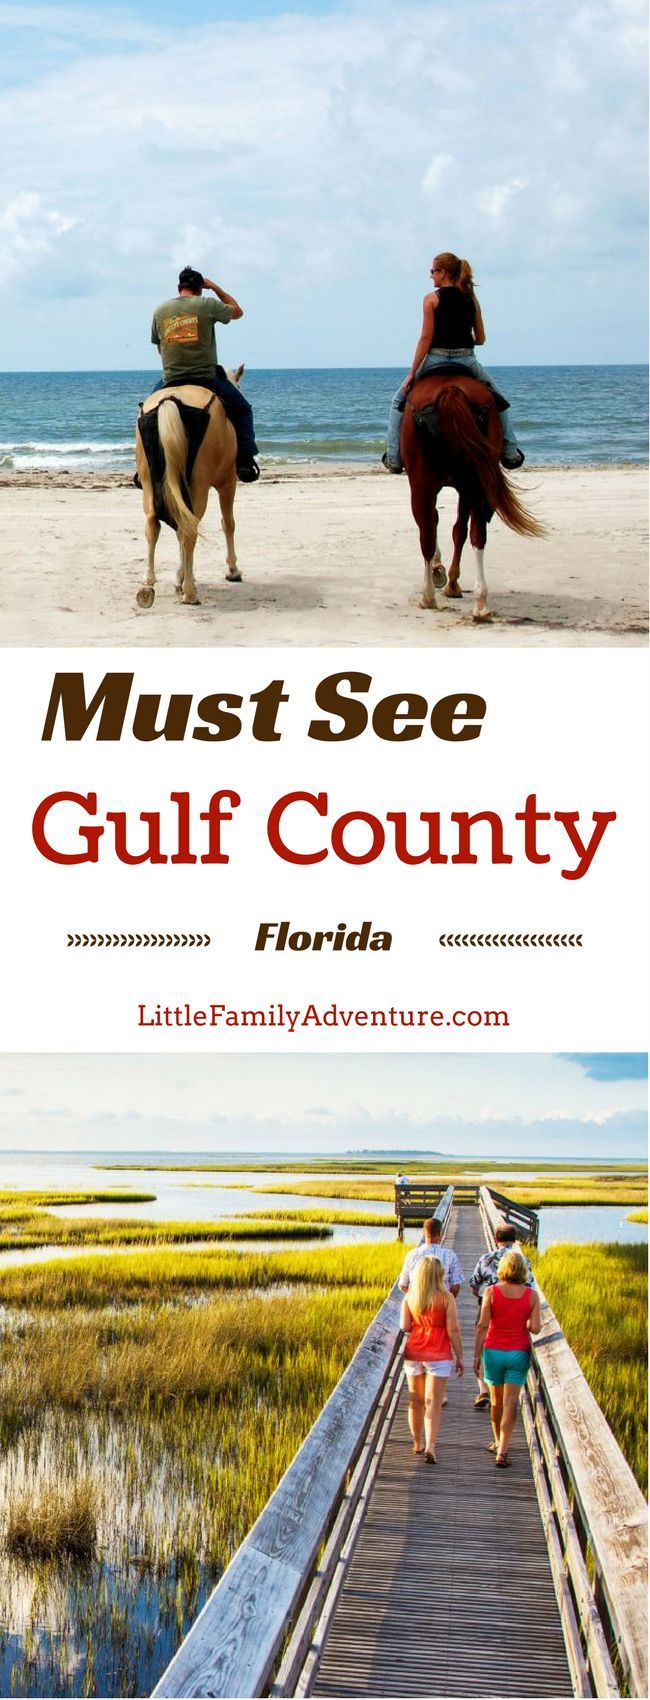 Must See Travel Spots: Gulf County, FL - Florida has more than just theme parks and thrill rides. Rediscover the nature beauty of the Gulf Coast here. You can explore over 244 miles of coastlines, pristine beaches, dive artificial reefs and dive sites, sit back, and relax as a family. #GCFLnofilter #ad @Gulf County Florida Tourism